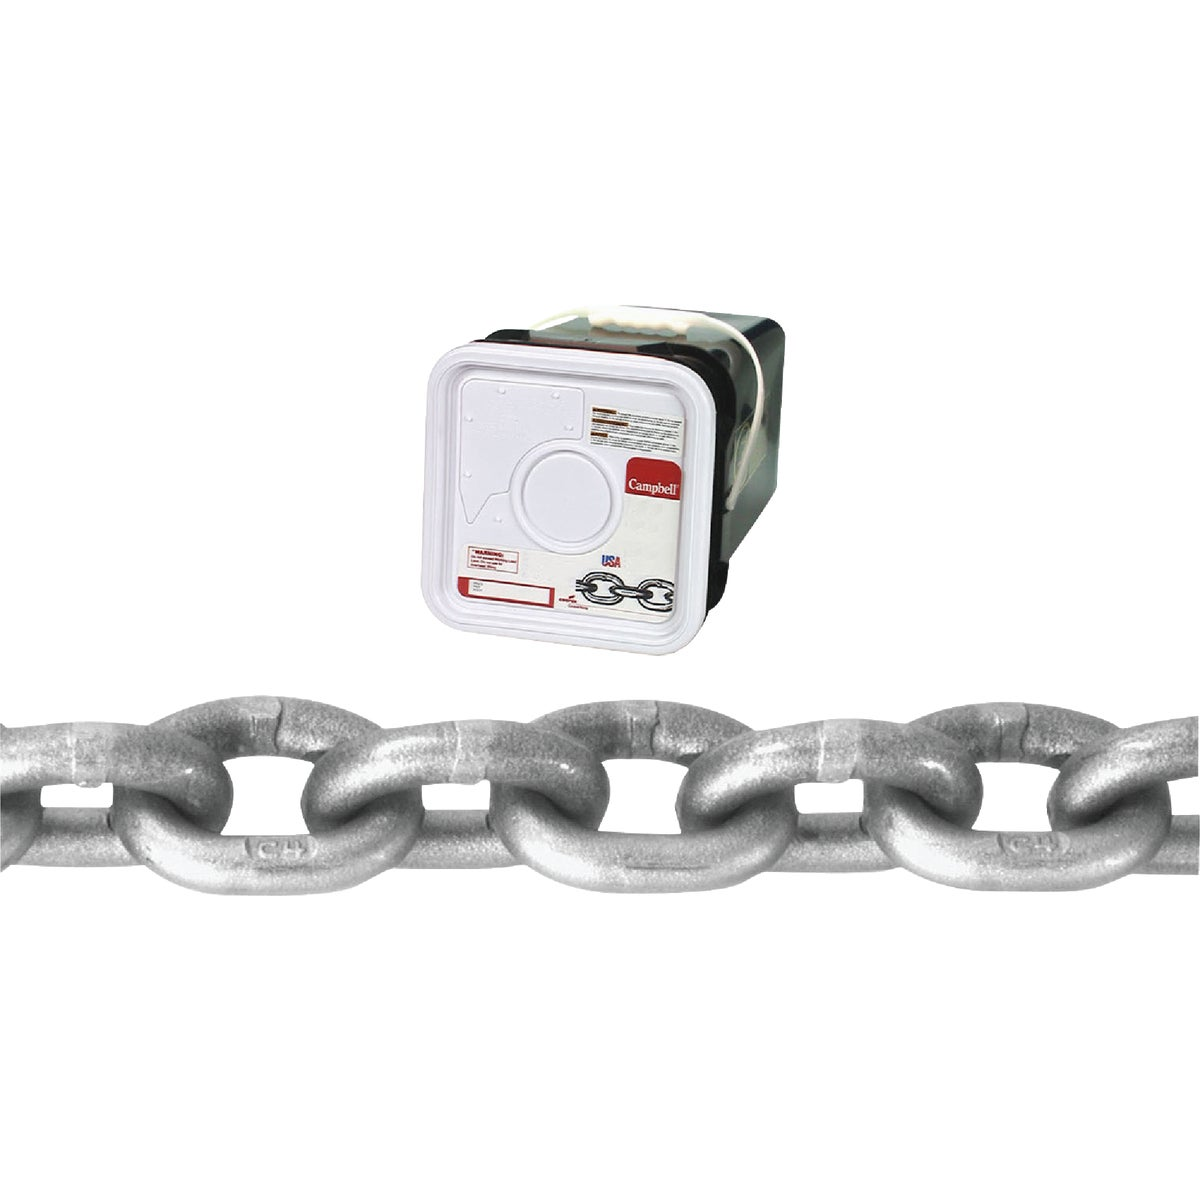 """60' 5/16"""" G43 CHAIN - 0184516 by Cooper Campbell Apex"""